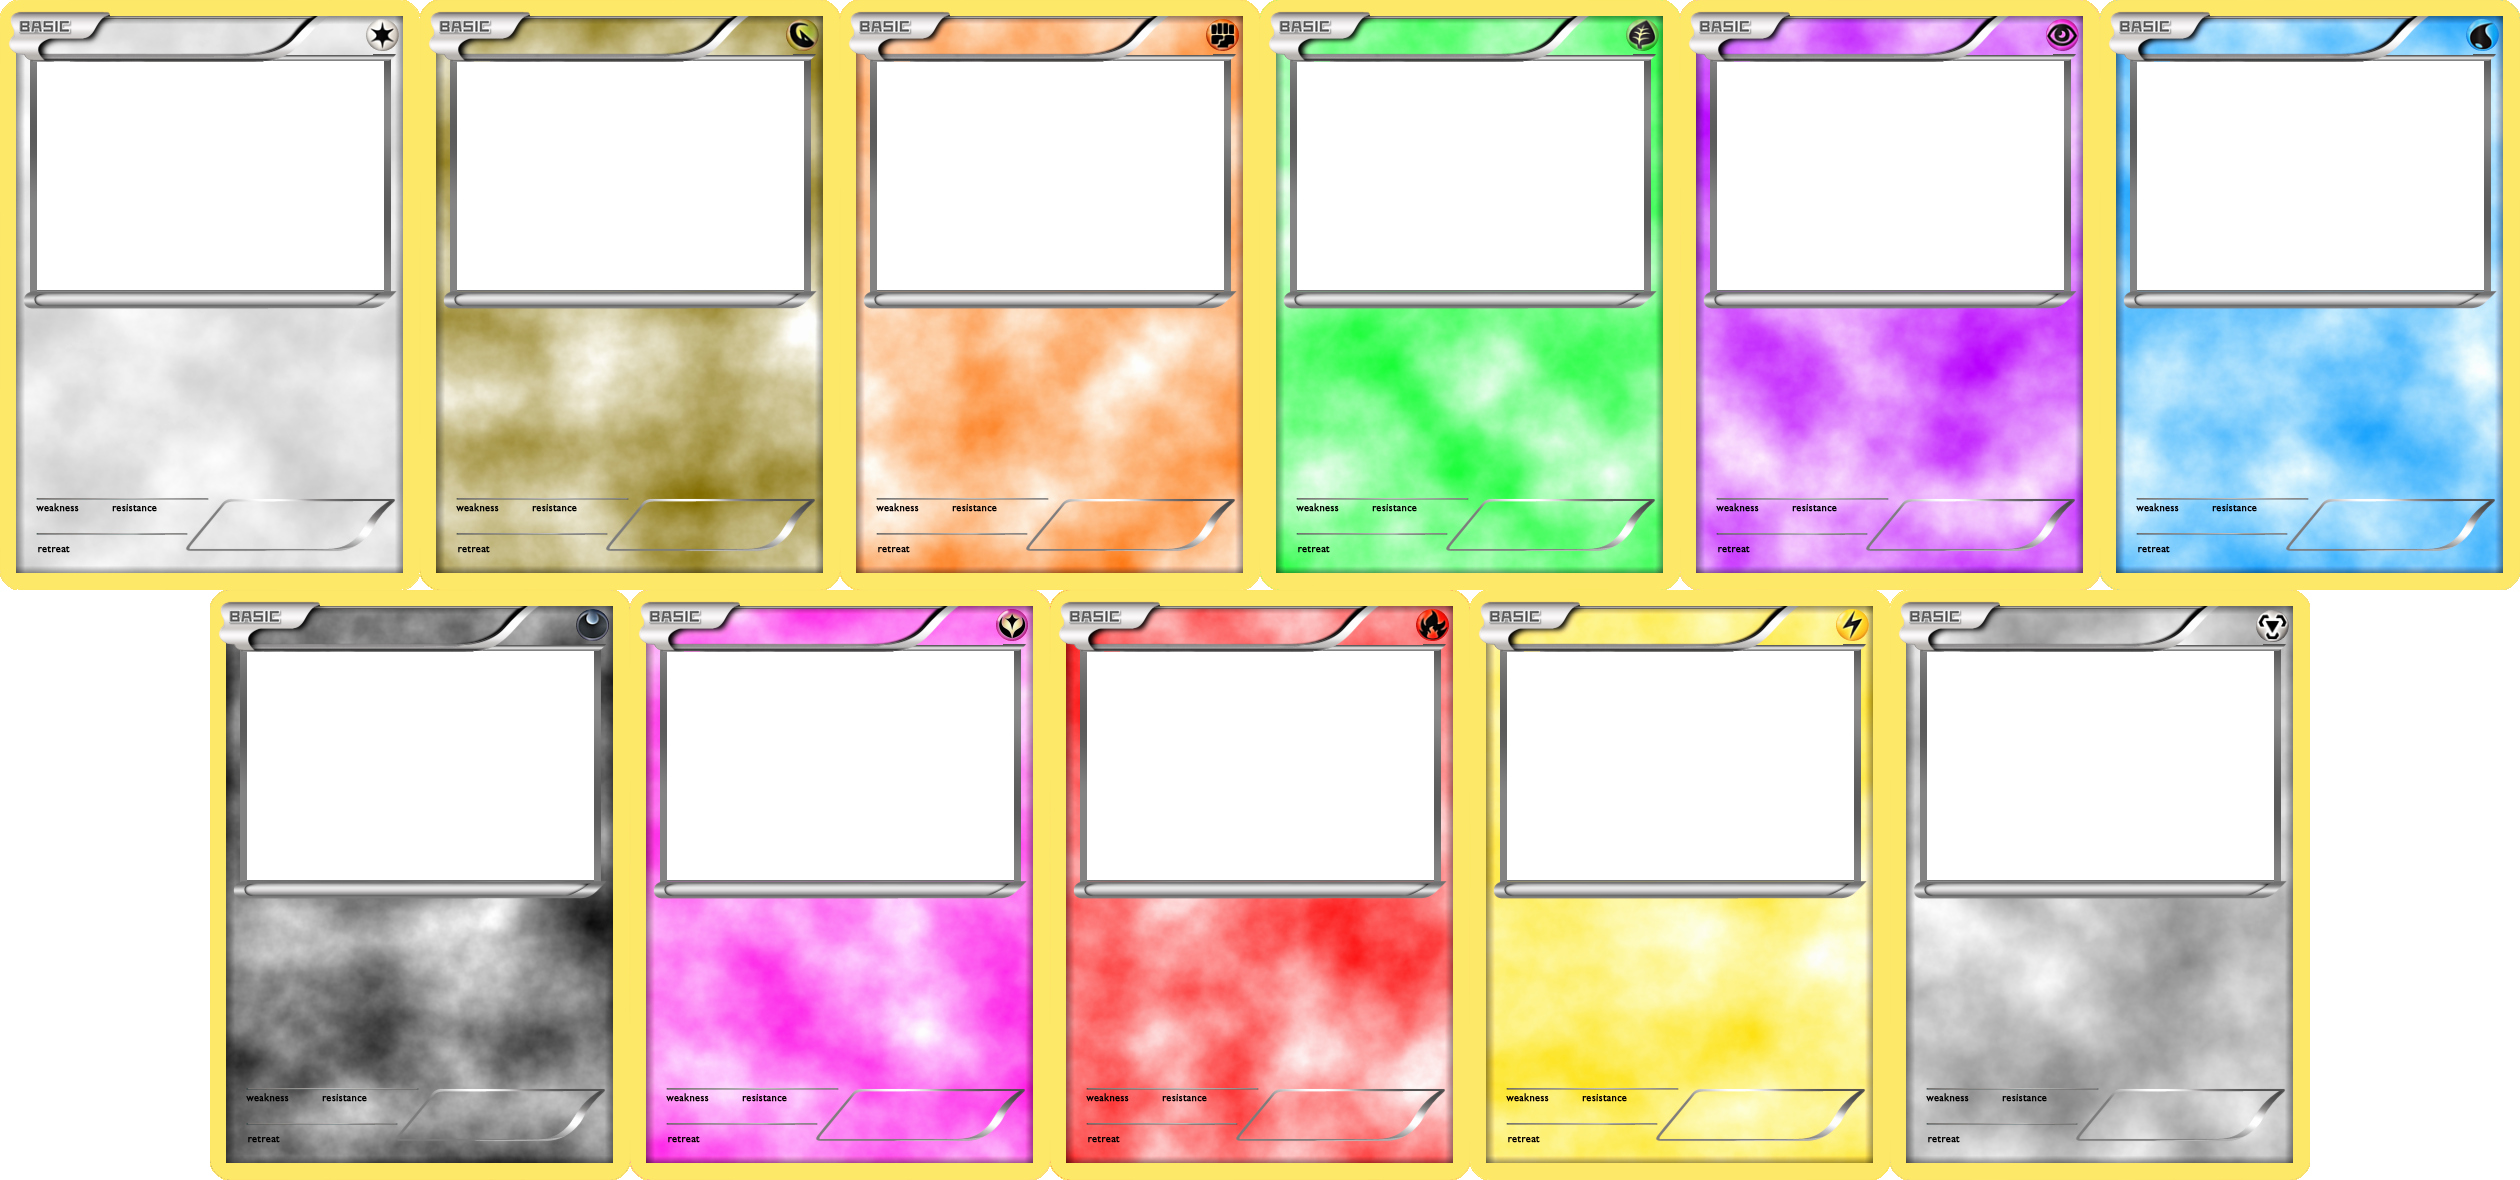 Blank Game Card Template Awesome Pokemon Blank Card Templates Basic by Levelinfinitum On